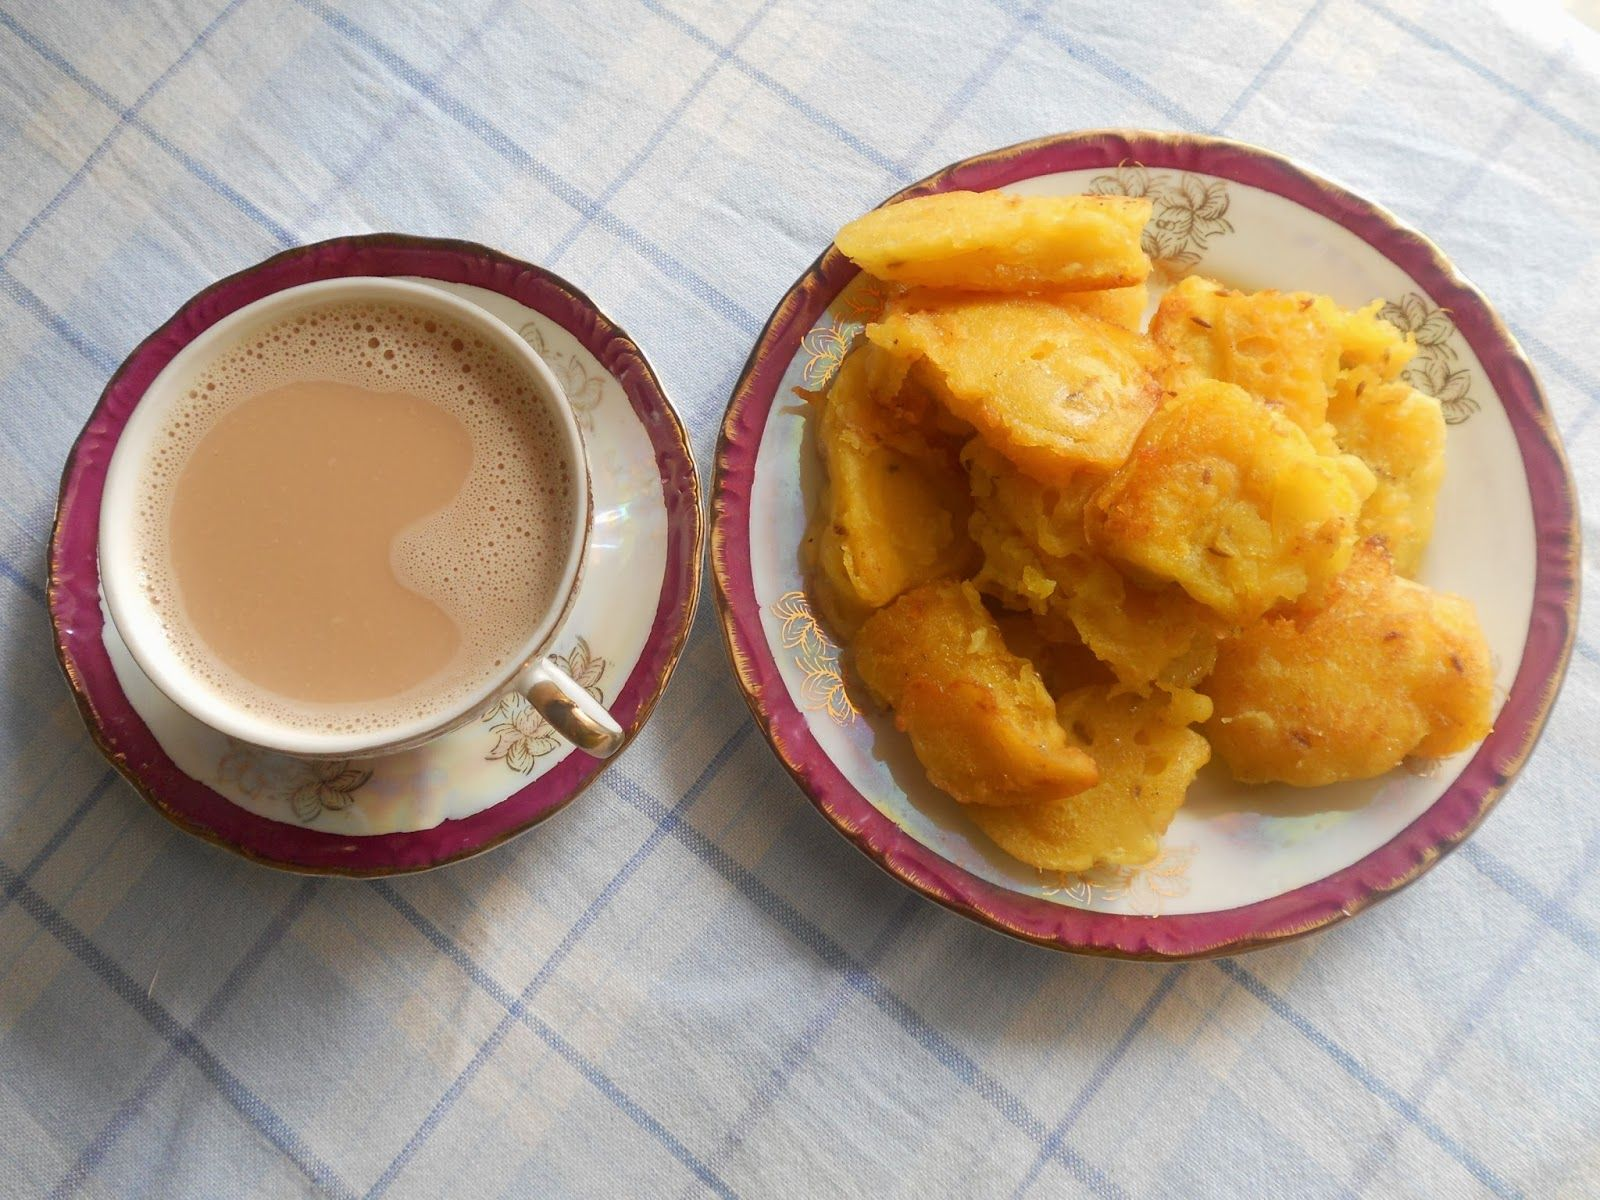 Who doesn't have fond memories about the time when we used to devour golden pazham poris with piping hot chai (tea) while watching the thundering monsoon showers from afar? Yes, along with parippu vada (lentil fritters), we Malayalees delight in demolishing pazham pori (Kerala style fried banana fritters).